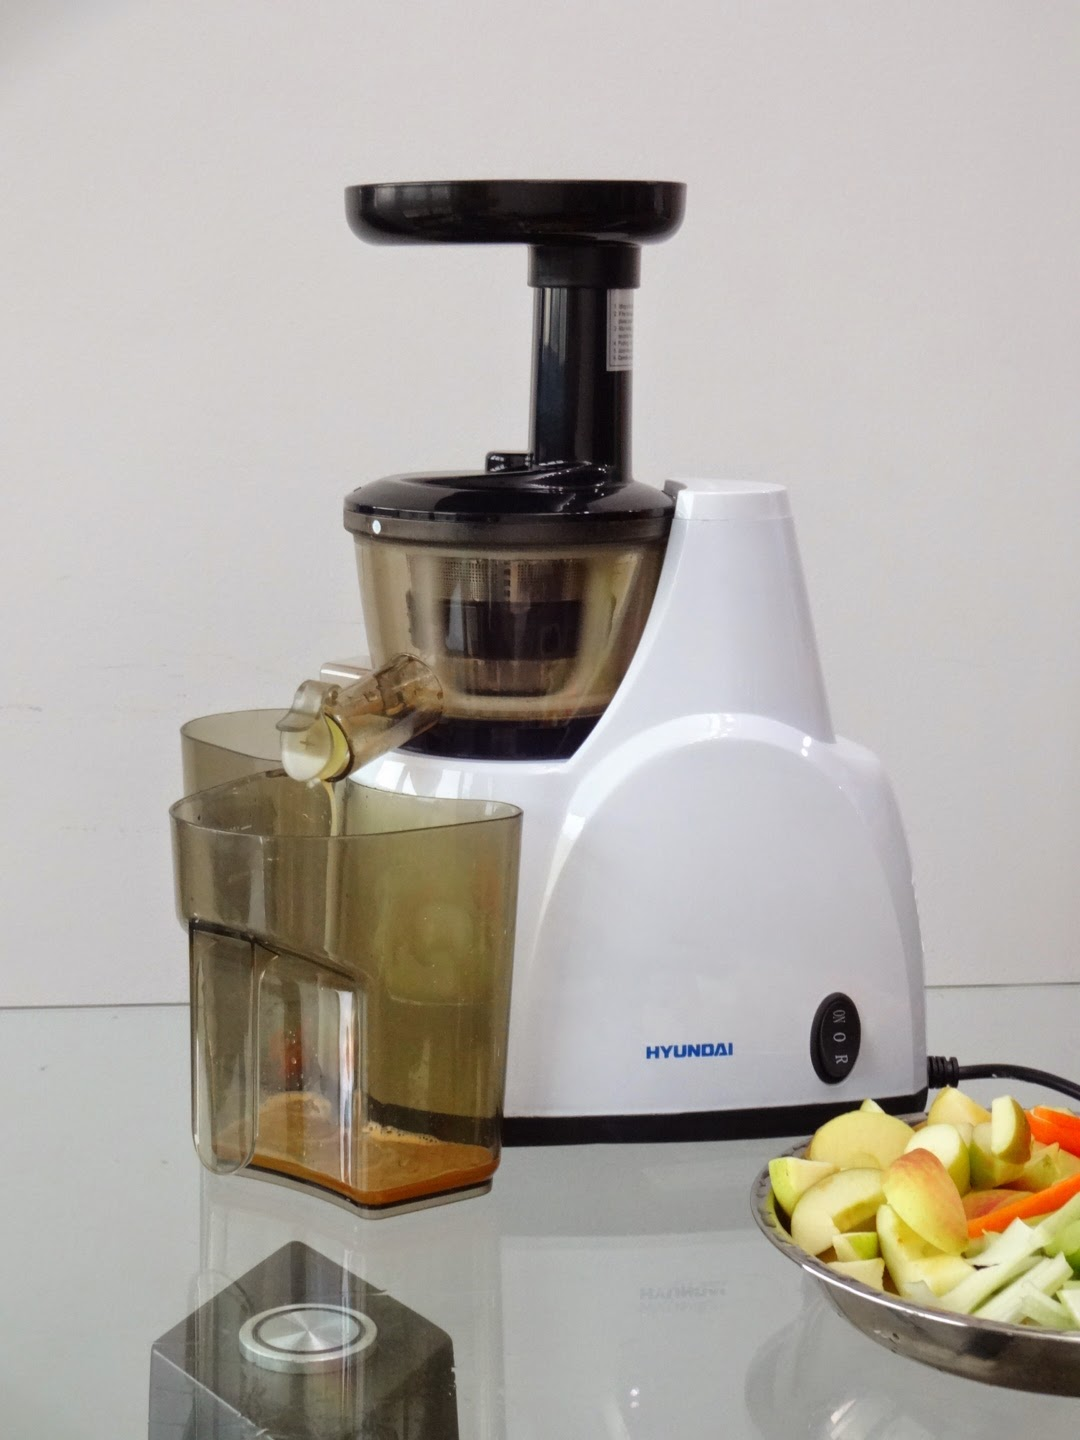 Hyundai Slow Juicer 7750 : a day in the life of a BE@RBRICK: Hyundai Slow Juicer [Updated]